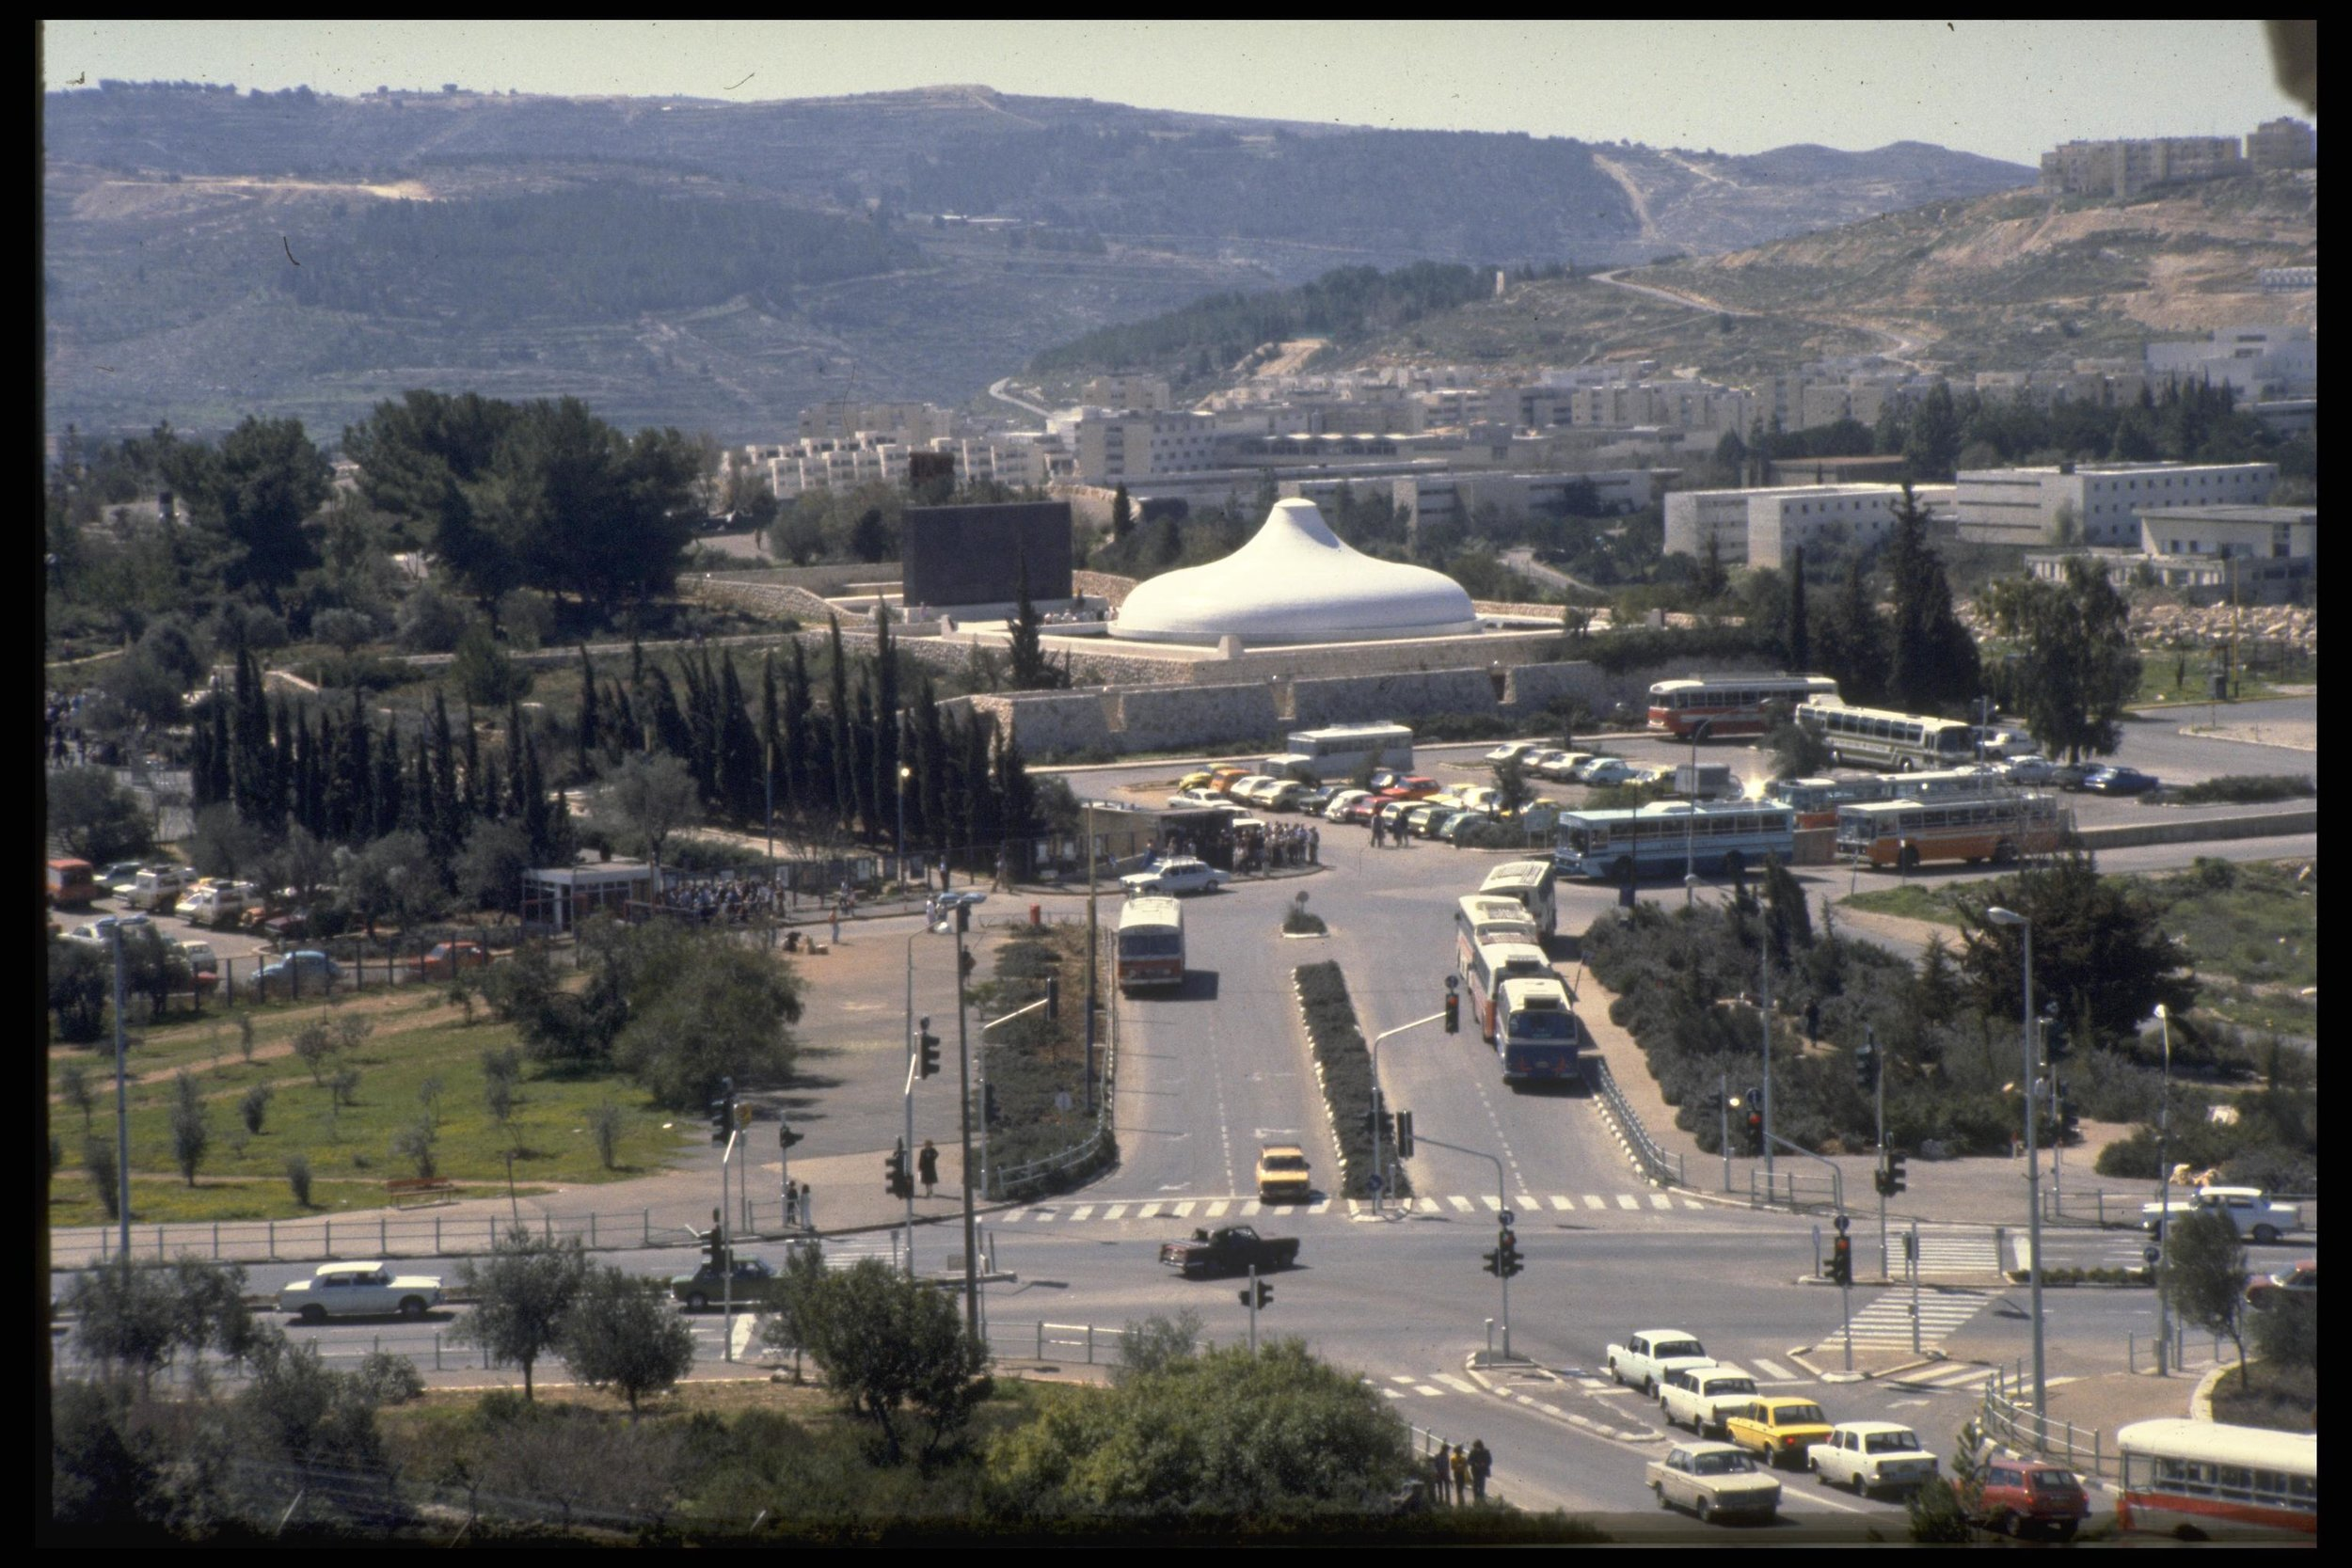 """Israel Museum houses the """"Shrine of the Book"""" with a Dead Sea Scrolls exhibit, as well as an excellent archaeological museum and model of ancient Jerusalem."""